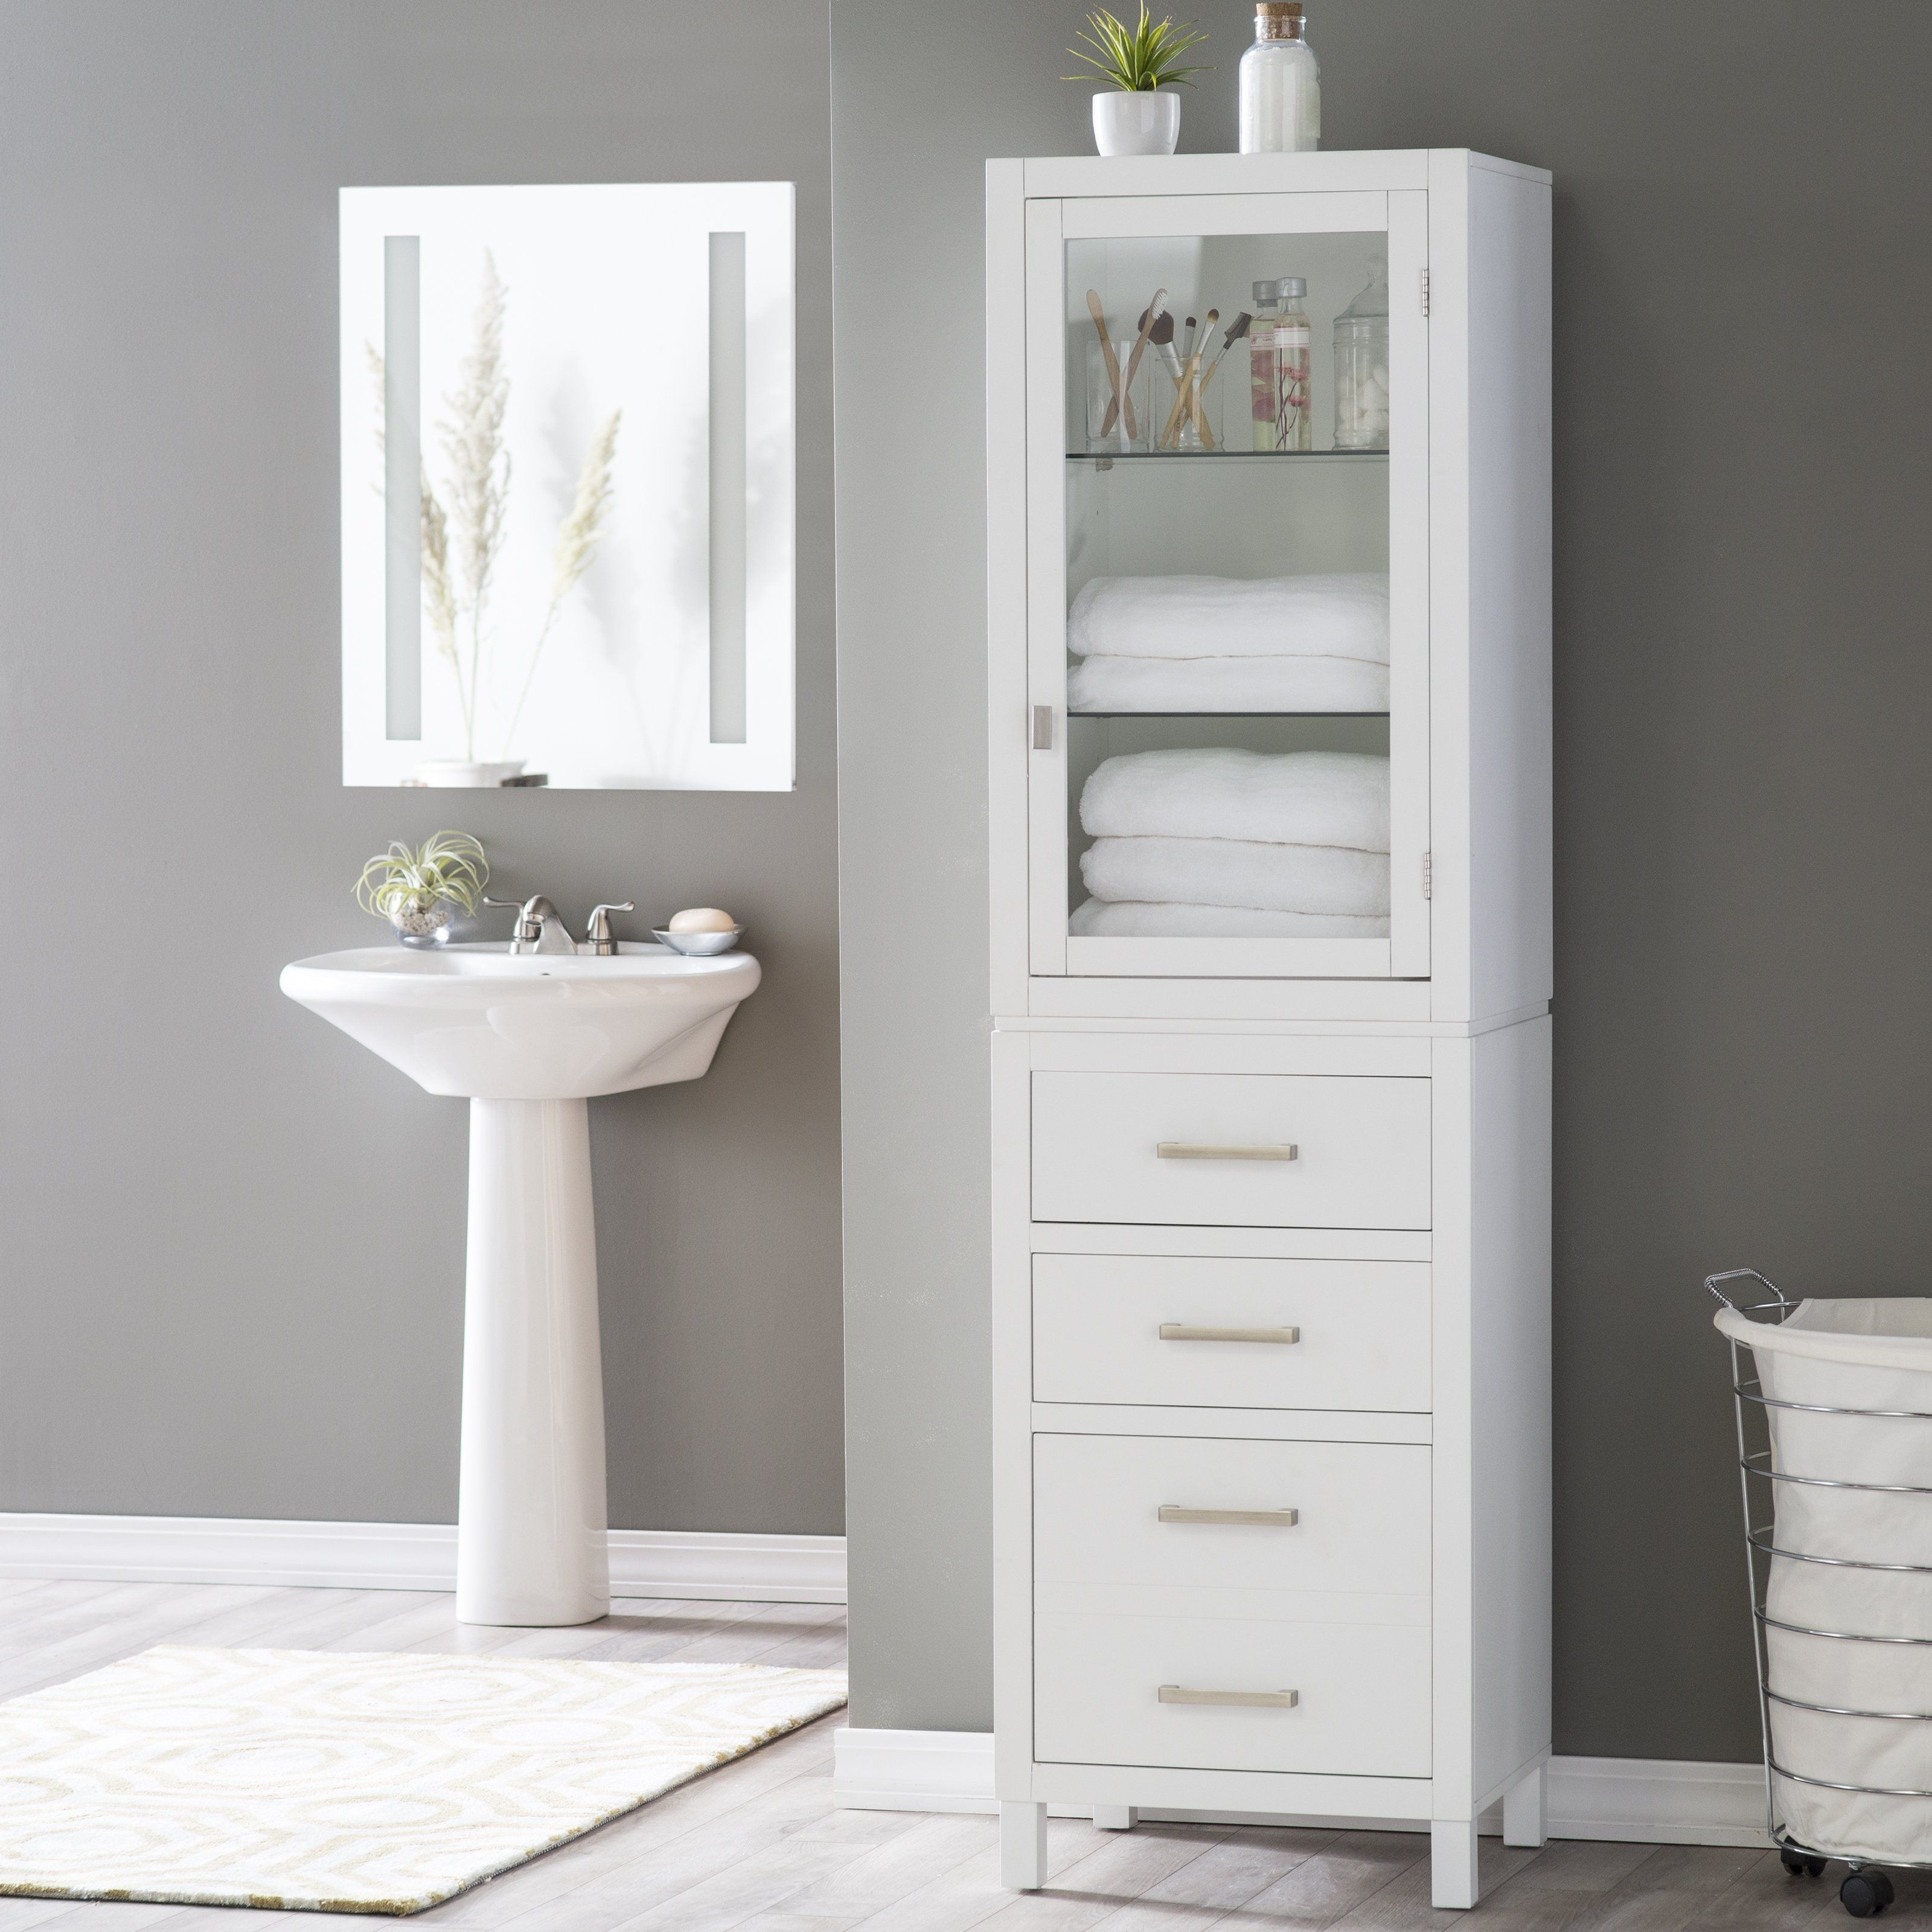 Free Standing Bathroom Linen Cabinets Bathroom Cabinets Are An Essential Attribute To An Tall Bathroom Storage White Bathroom Storage Bathroom Floor Cabinets